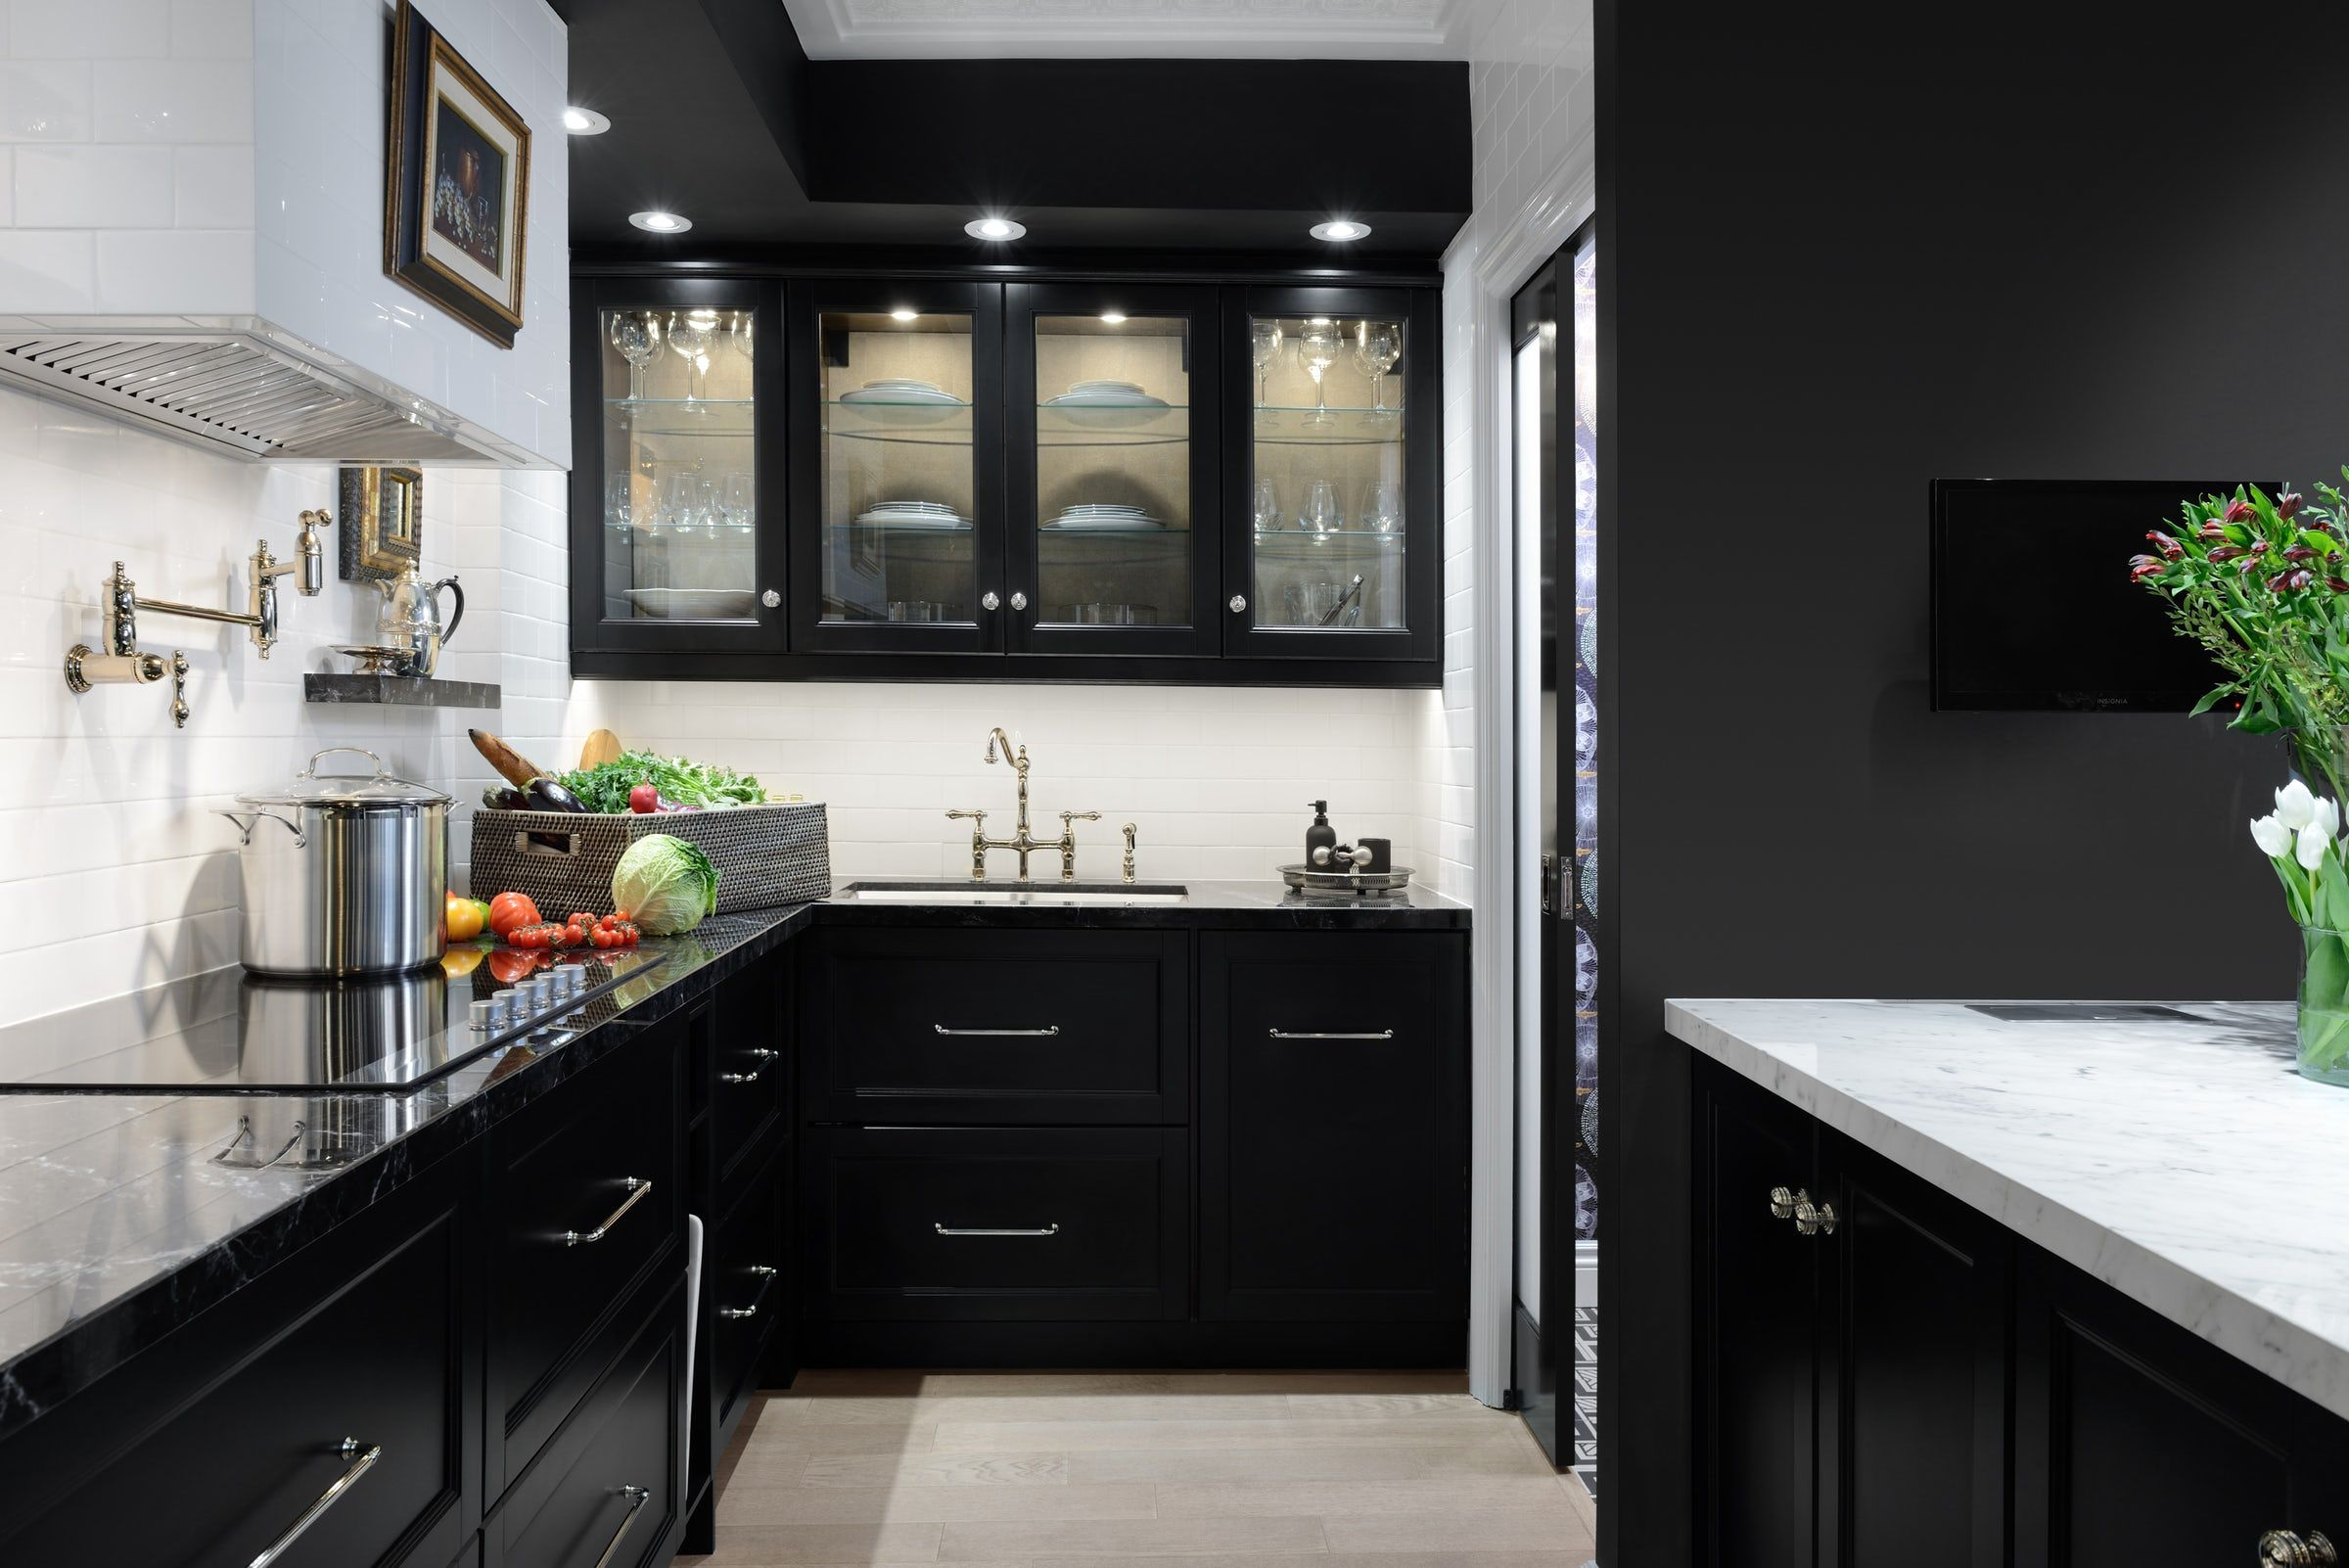 black kitchen cabinets low budget interior design rh aefboiaofu elitescloset store white cabinets black stainless appliances white countertops and black cabinets